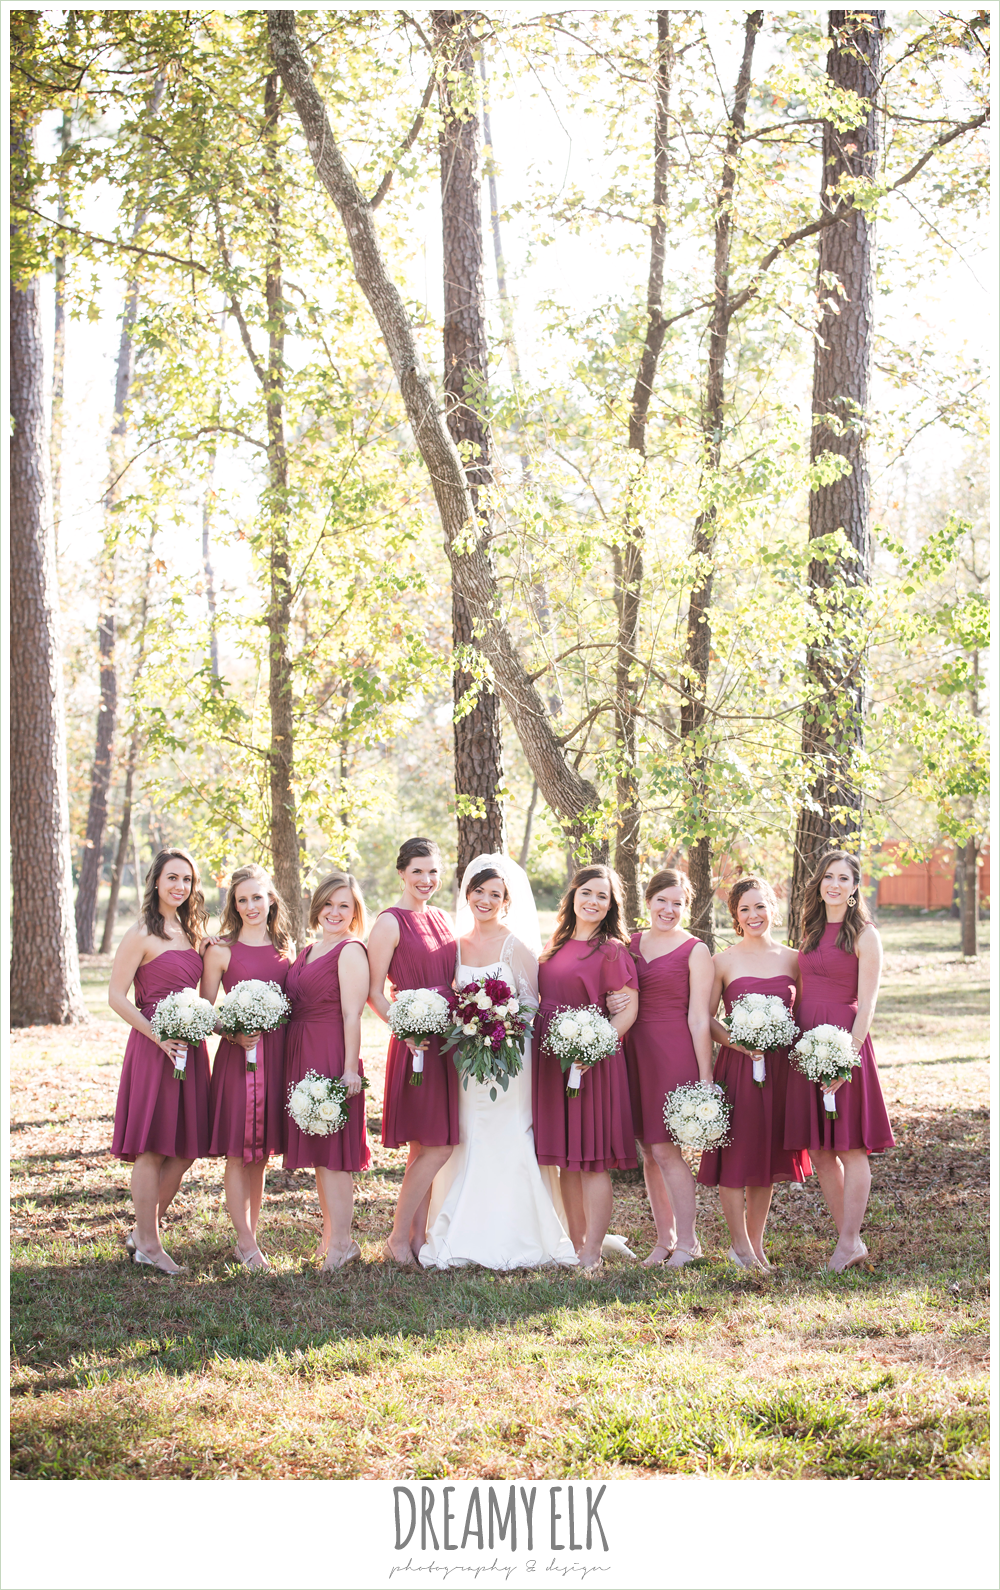 bride and bridesmaids, mulberry mix match david's bridal bridesmaids dresses, outdoor, winter december church wedding photo {dreamy elk photography and design}